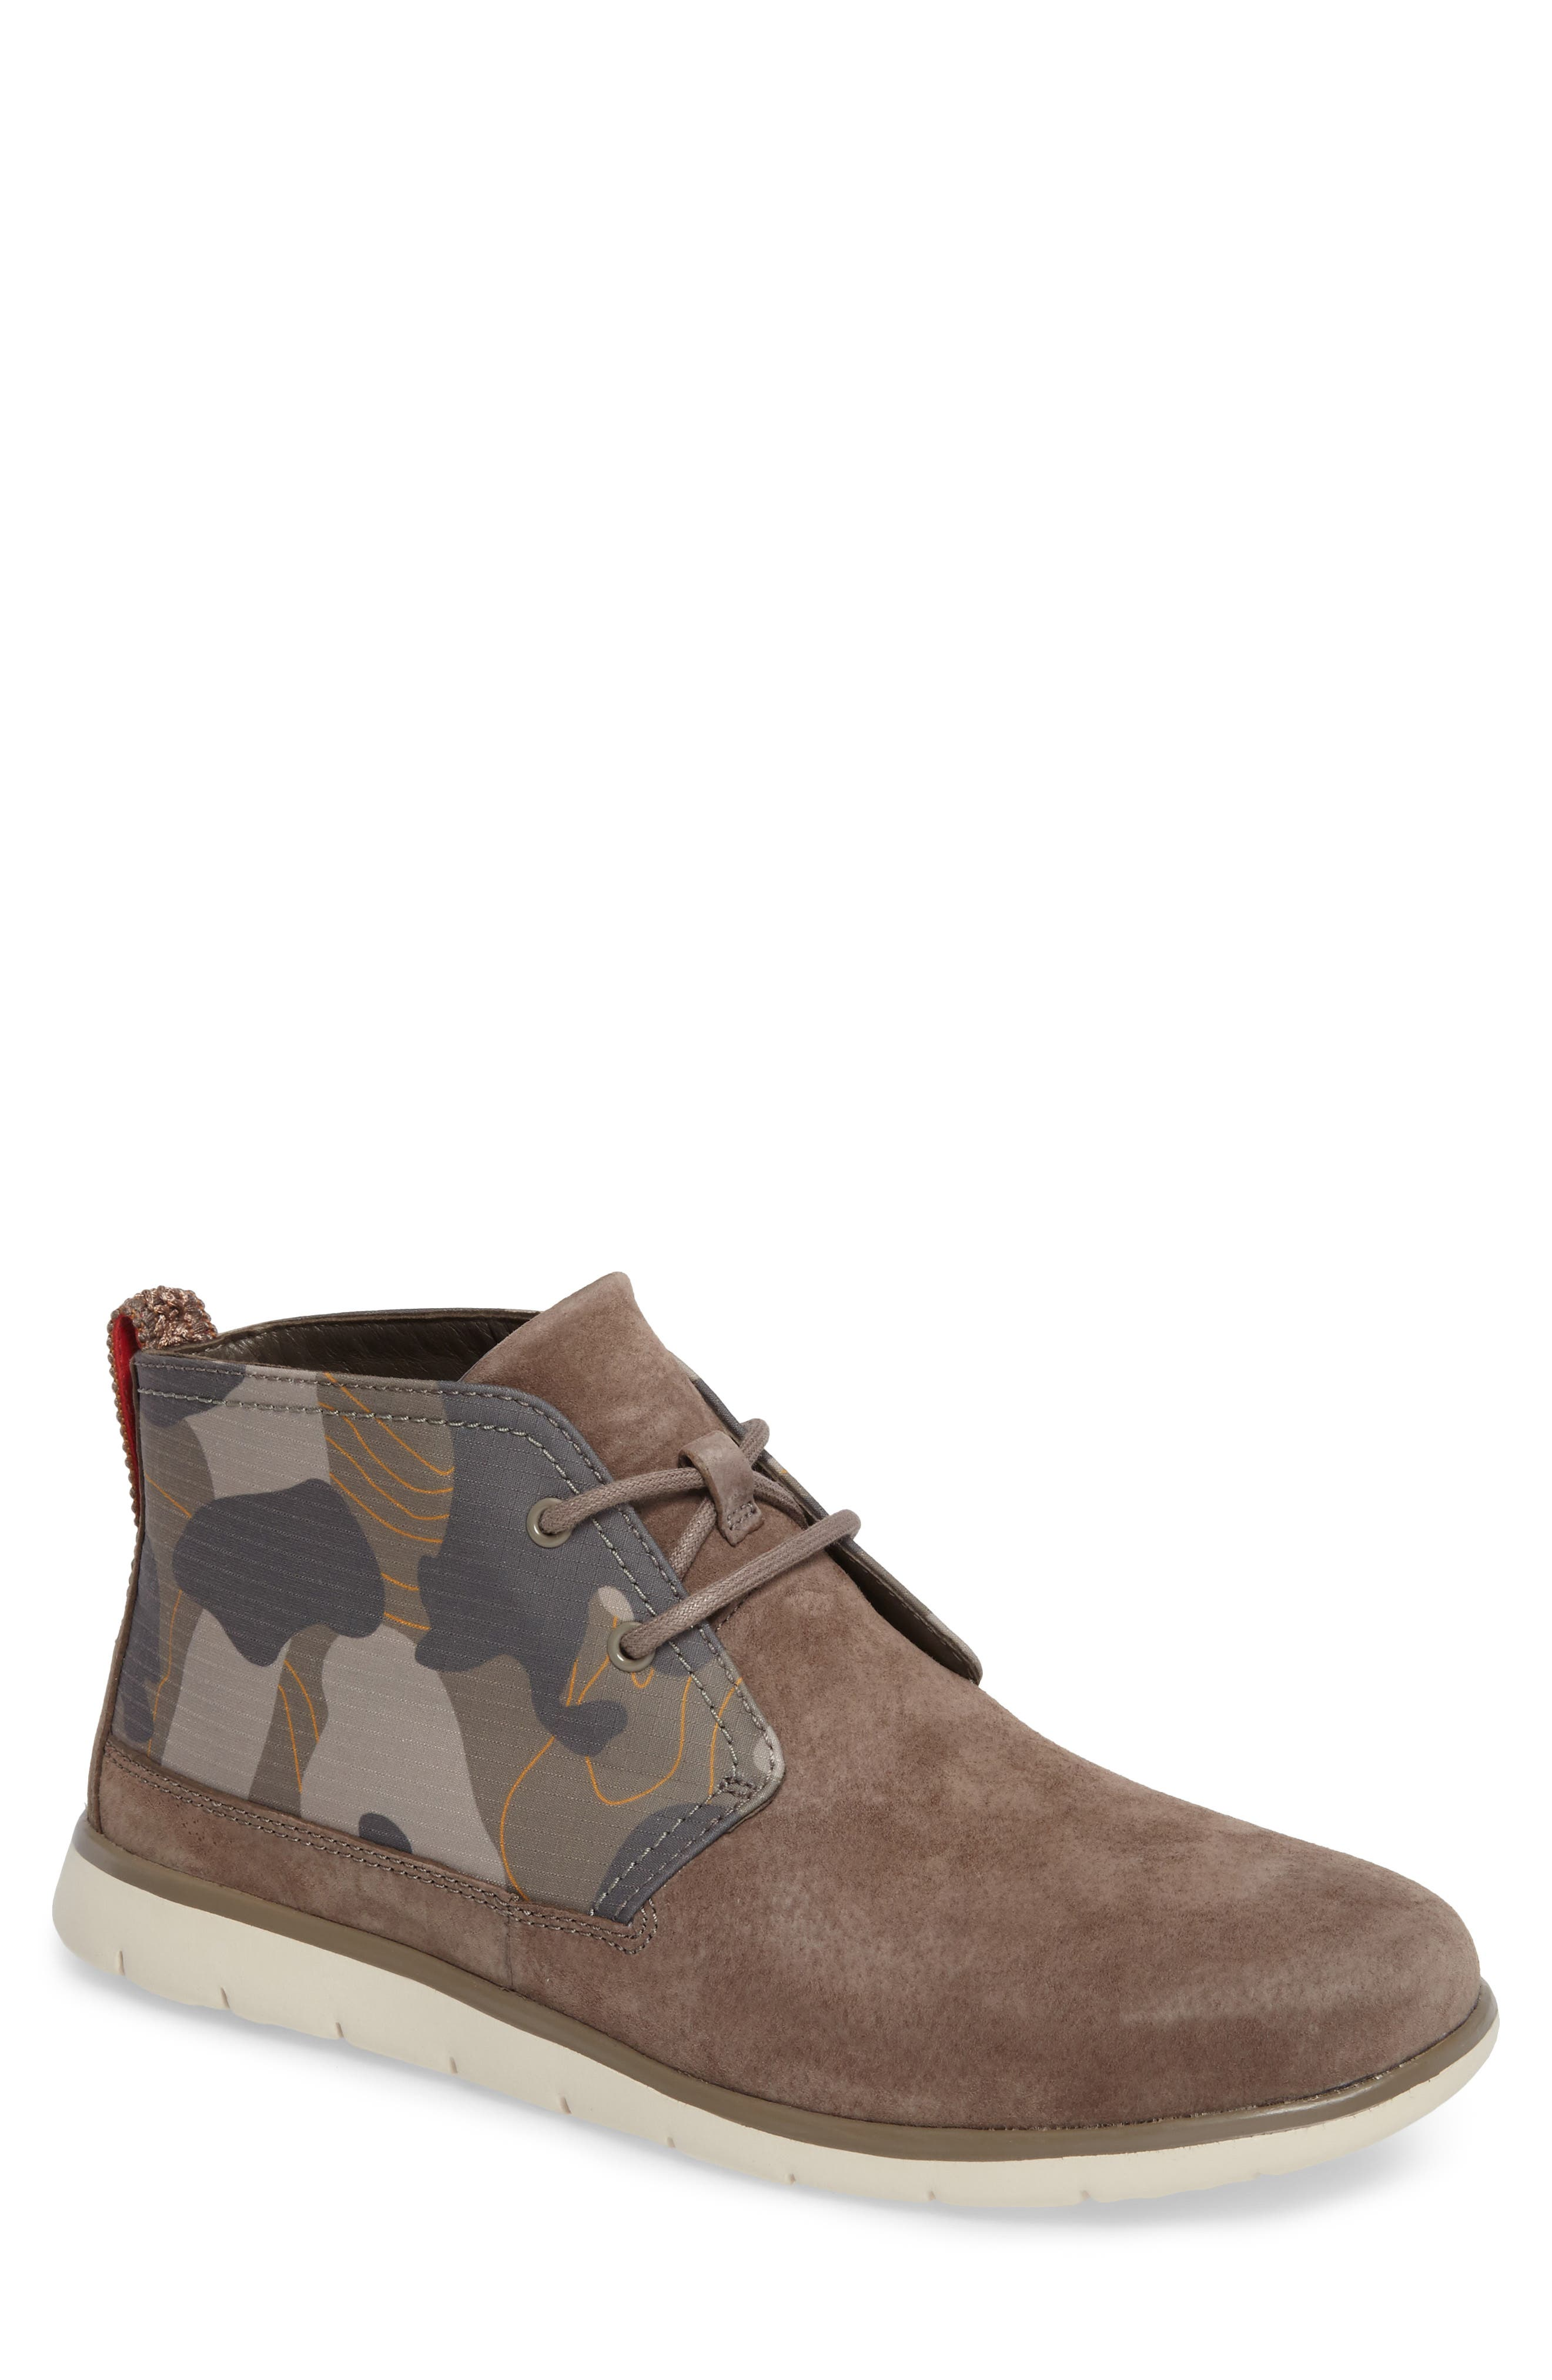 Freamon Chukka Boot,                             Main thumbnail 1, color,                             Brindle